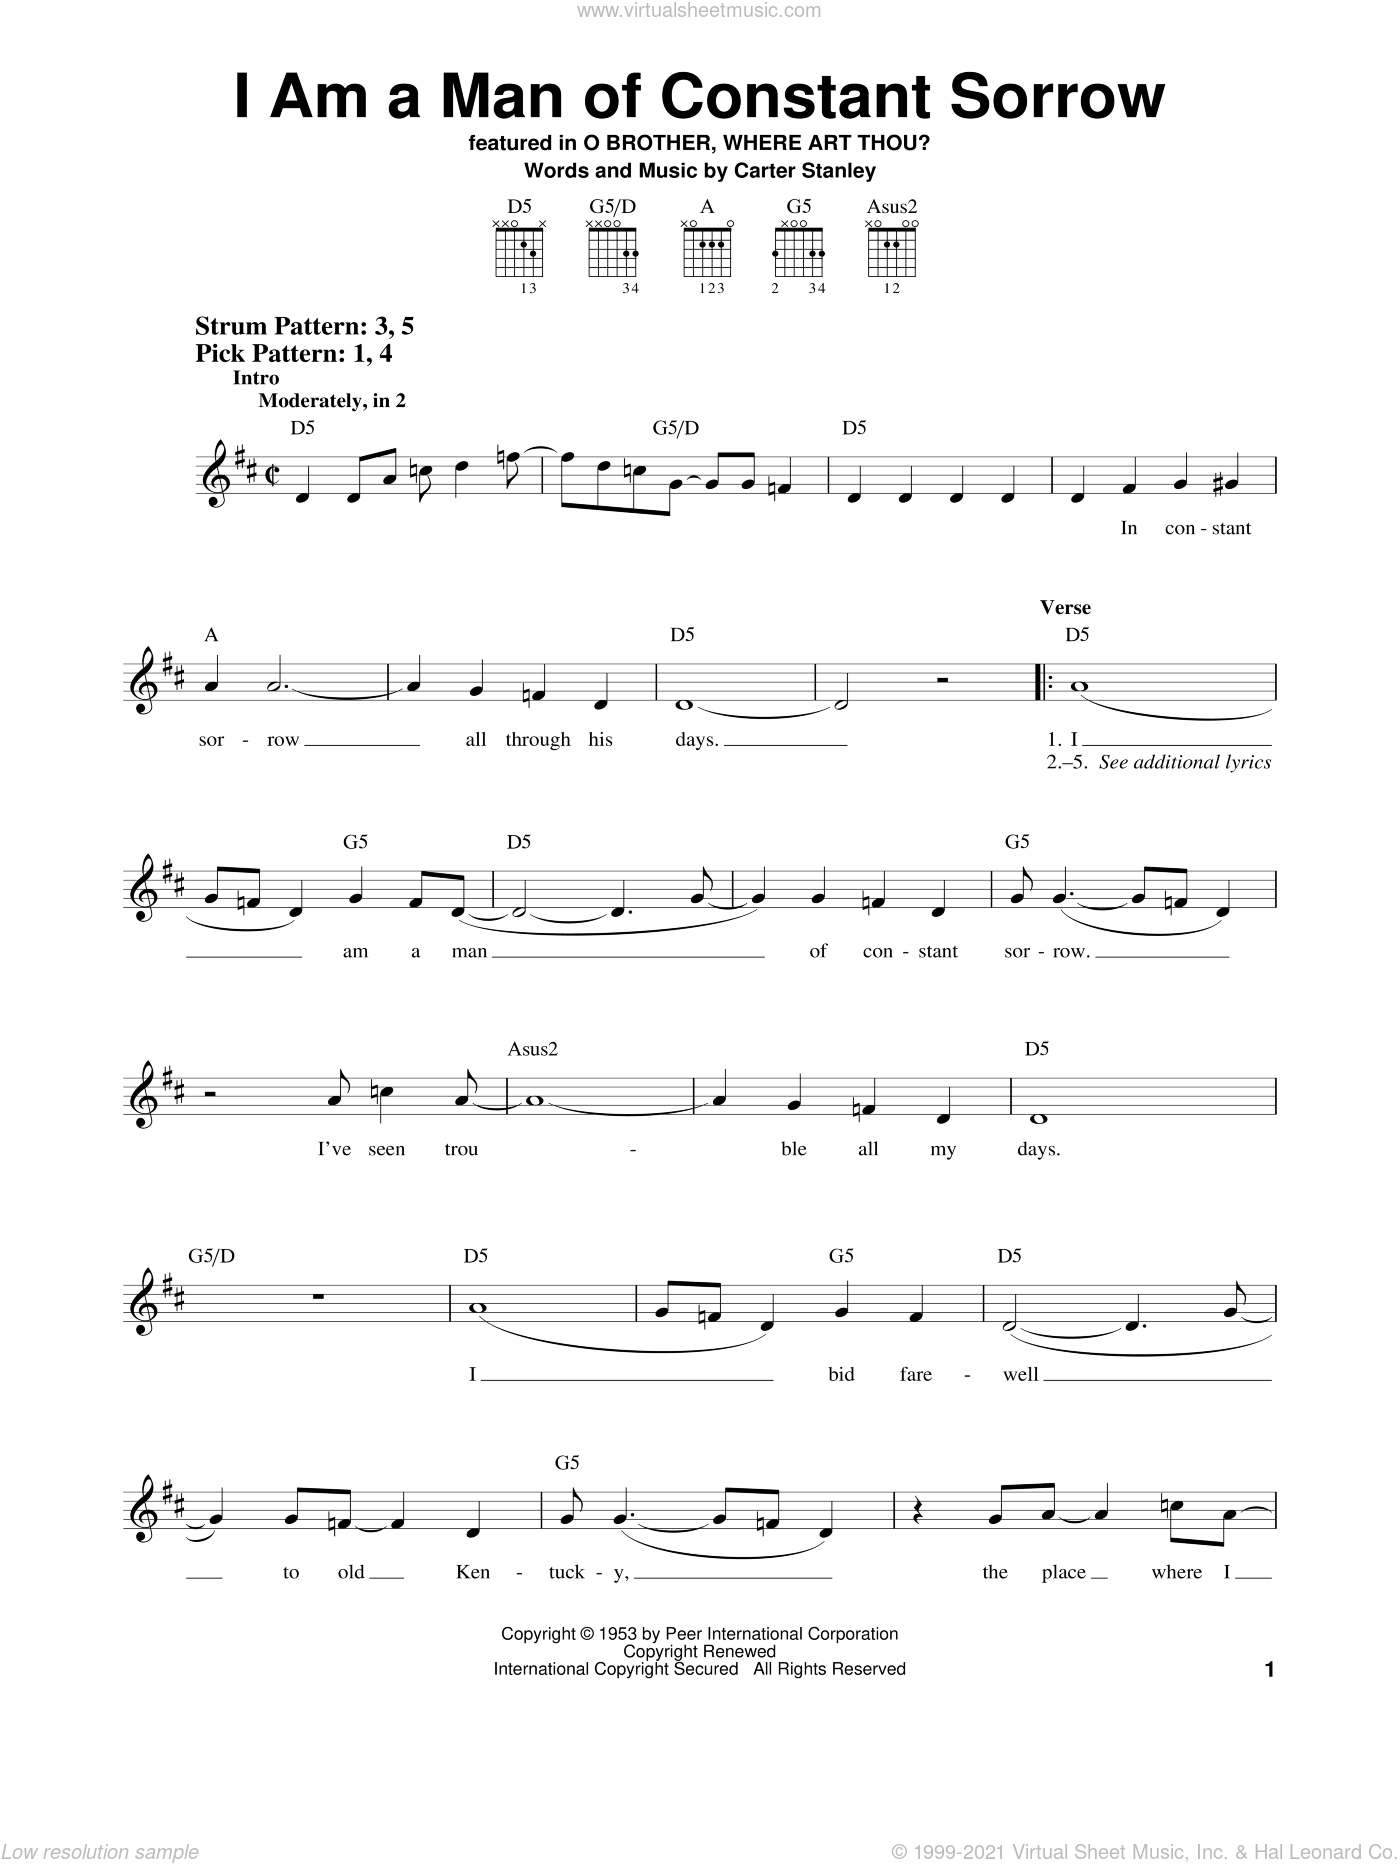 I Am A Man Of Constant Sorrow sheet music for guitar solo (chords) by Carter Stanley